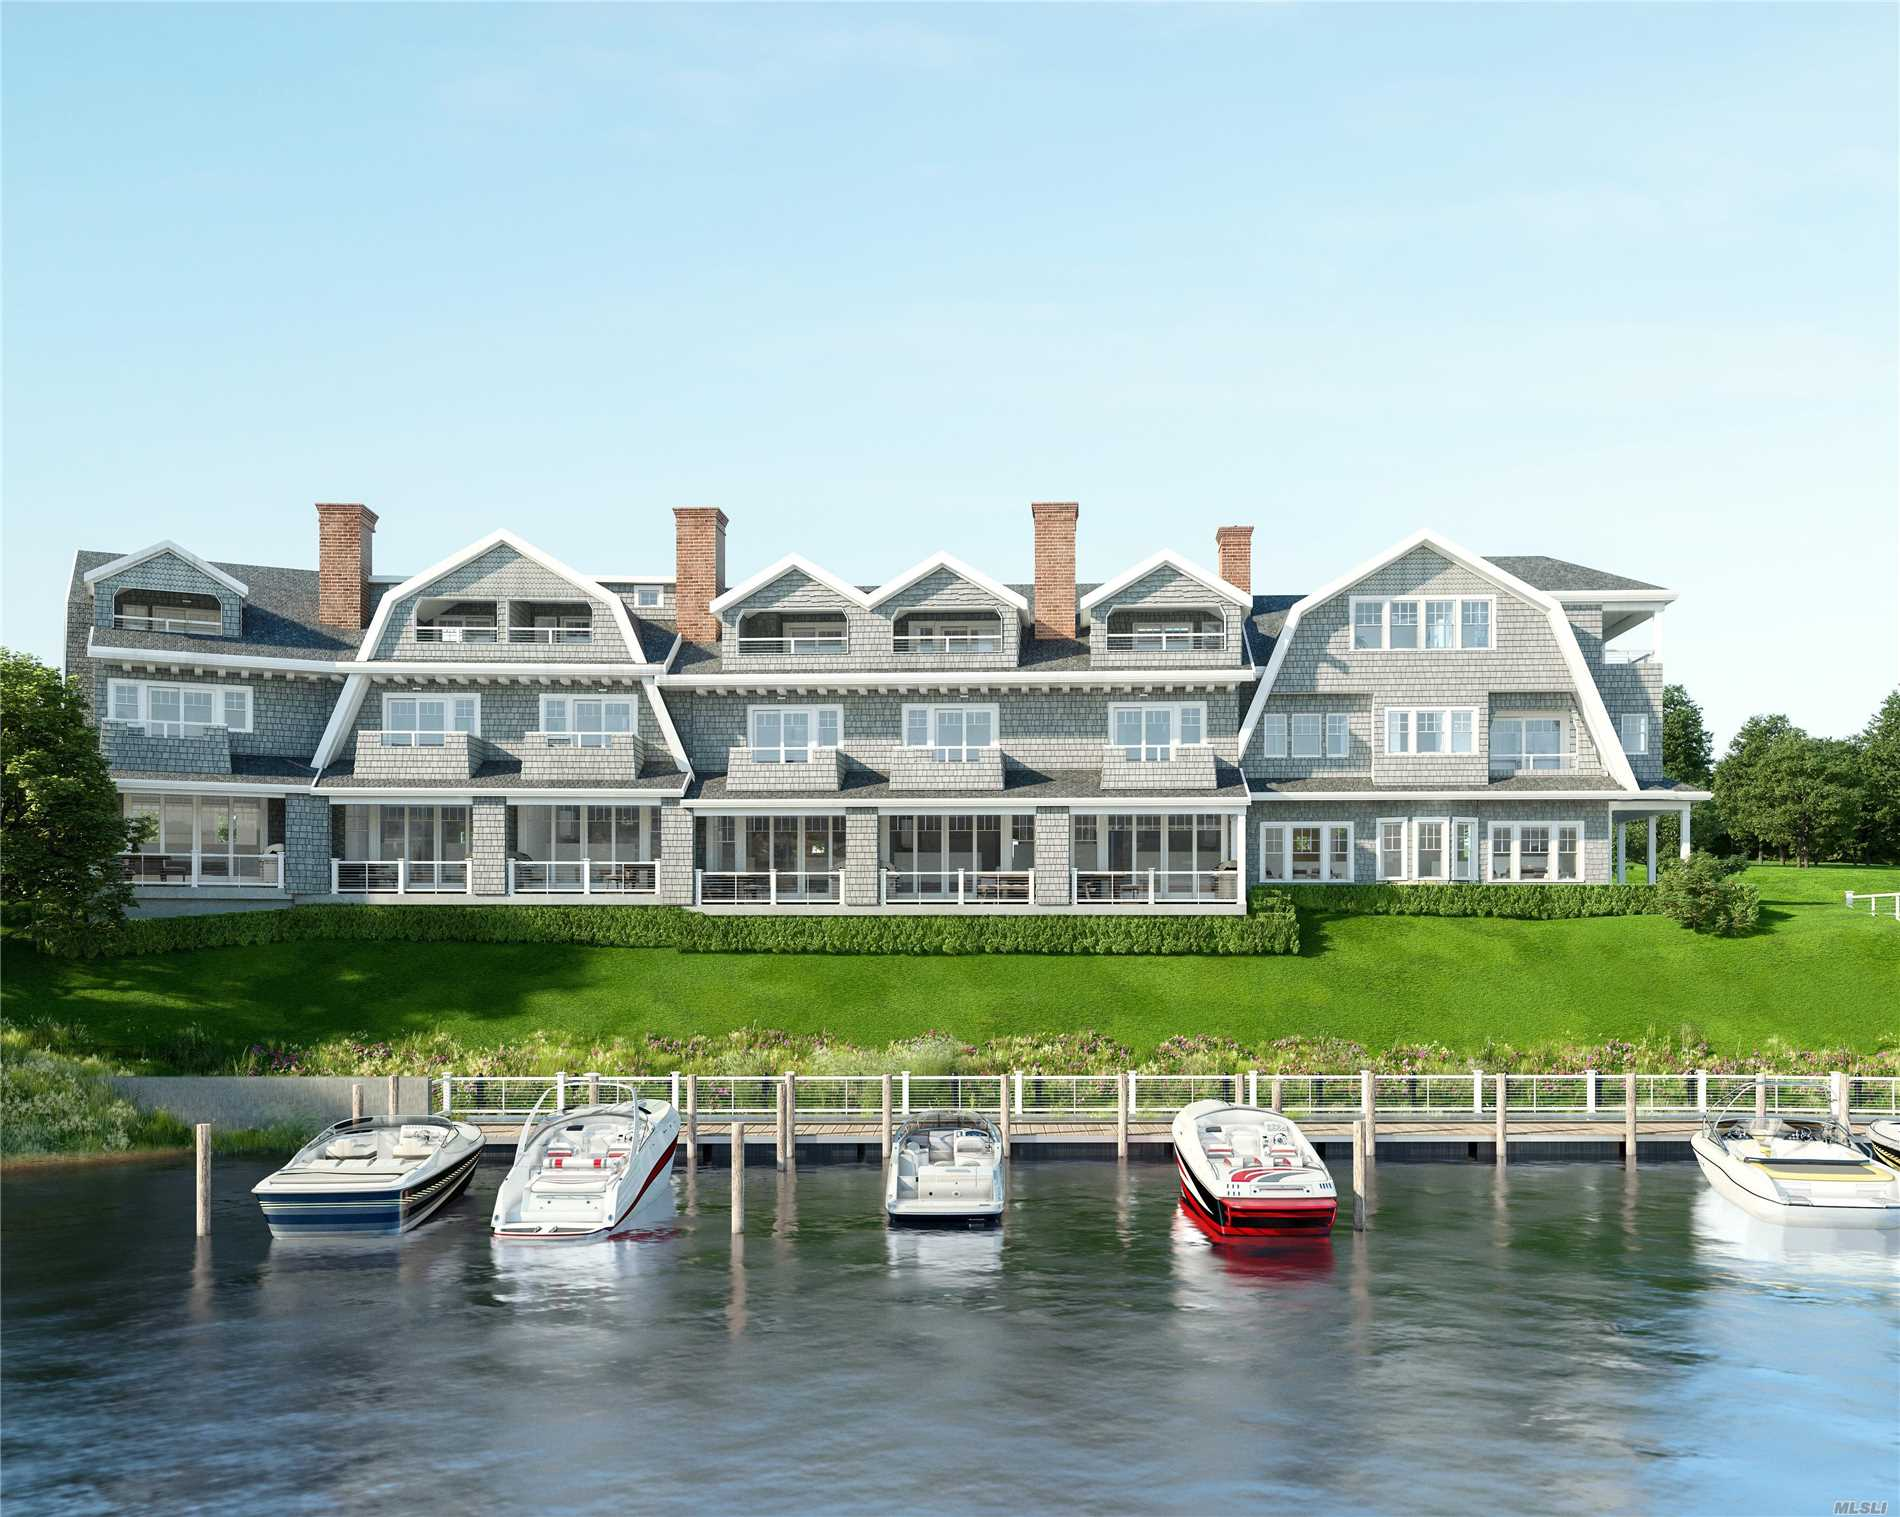 Property for sale at 41 Old Boathouse Ln Unit 305, Hampton Bays,  New York 11946